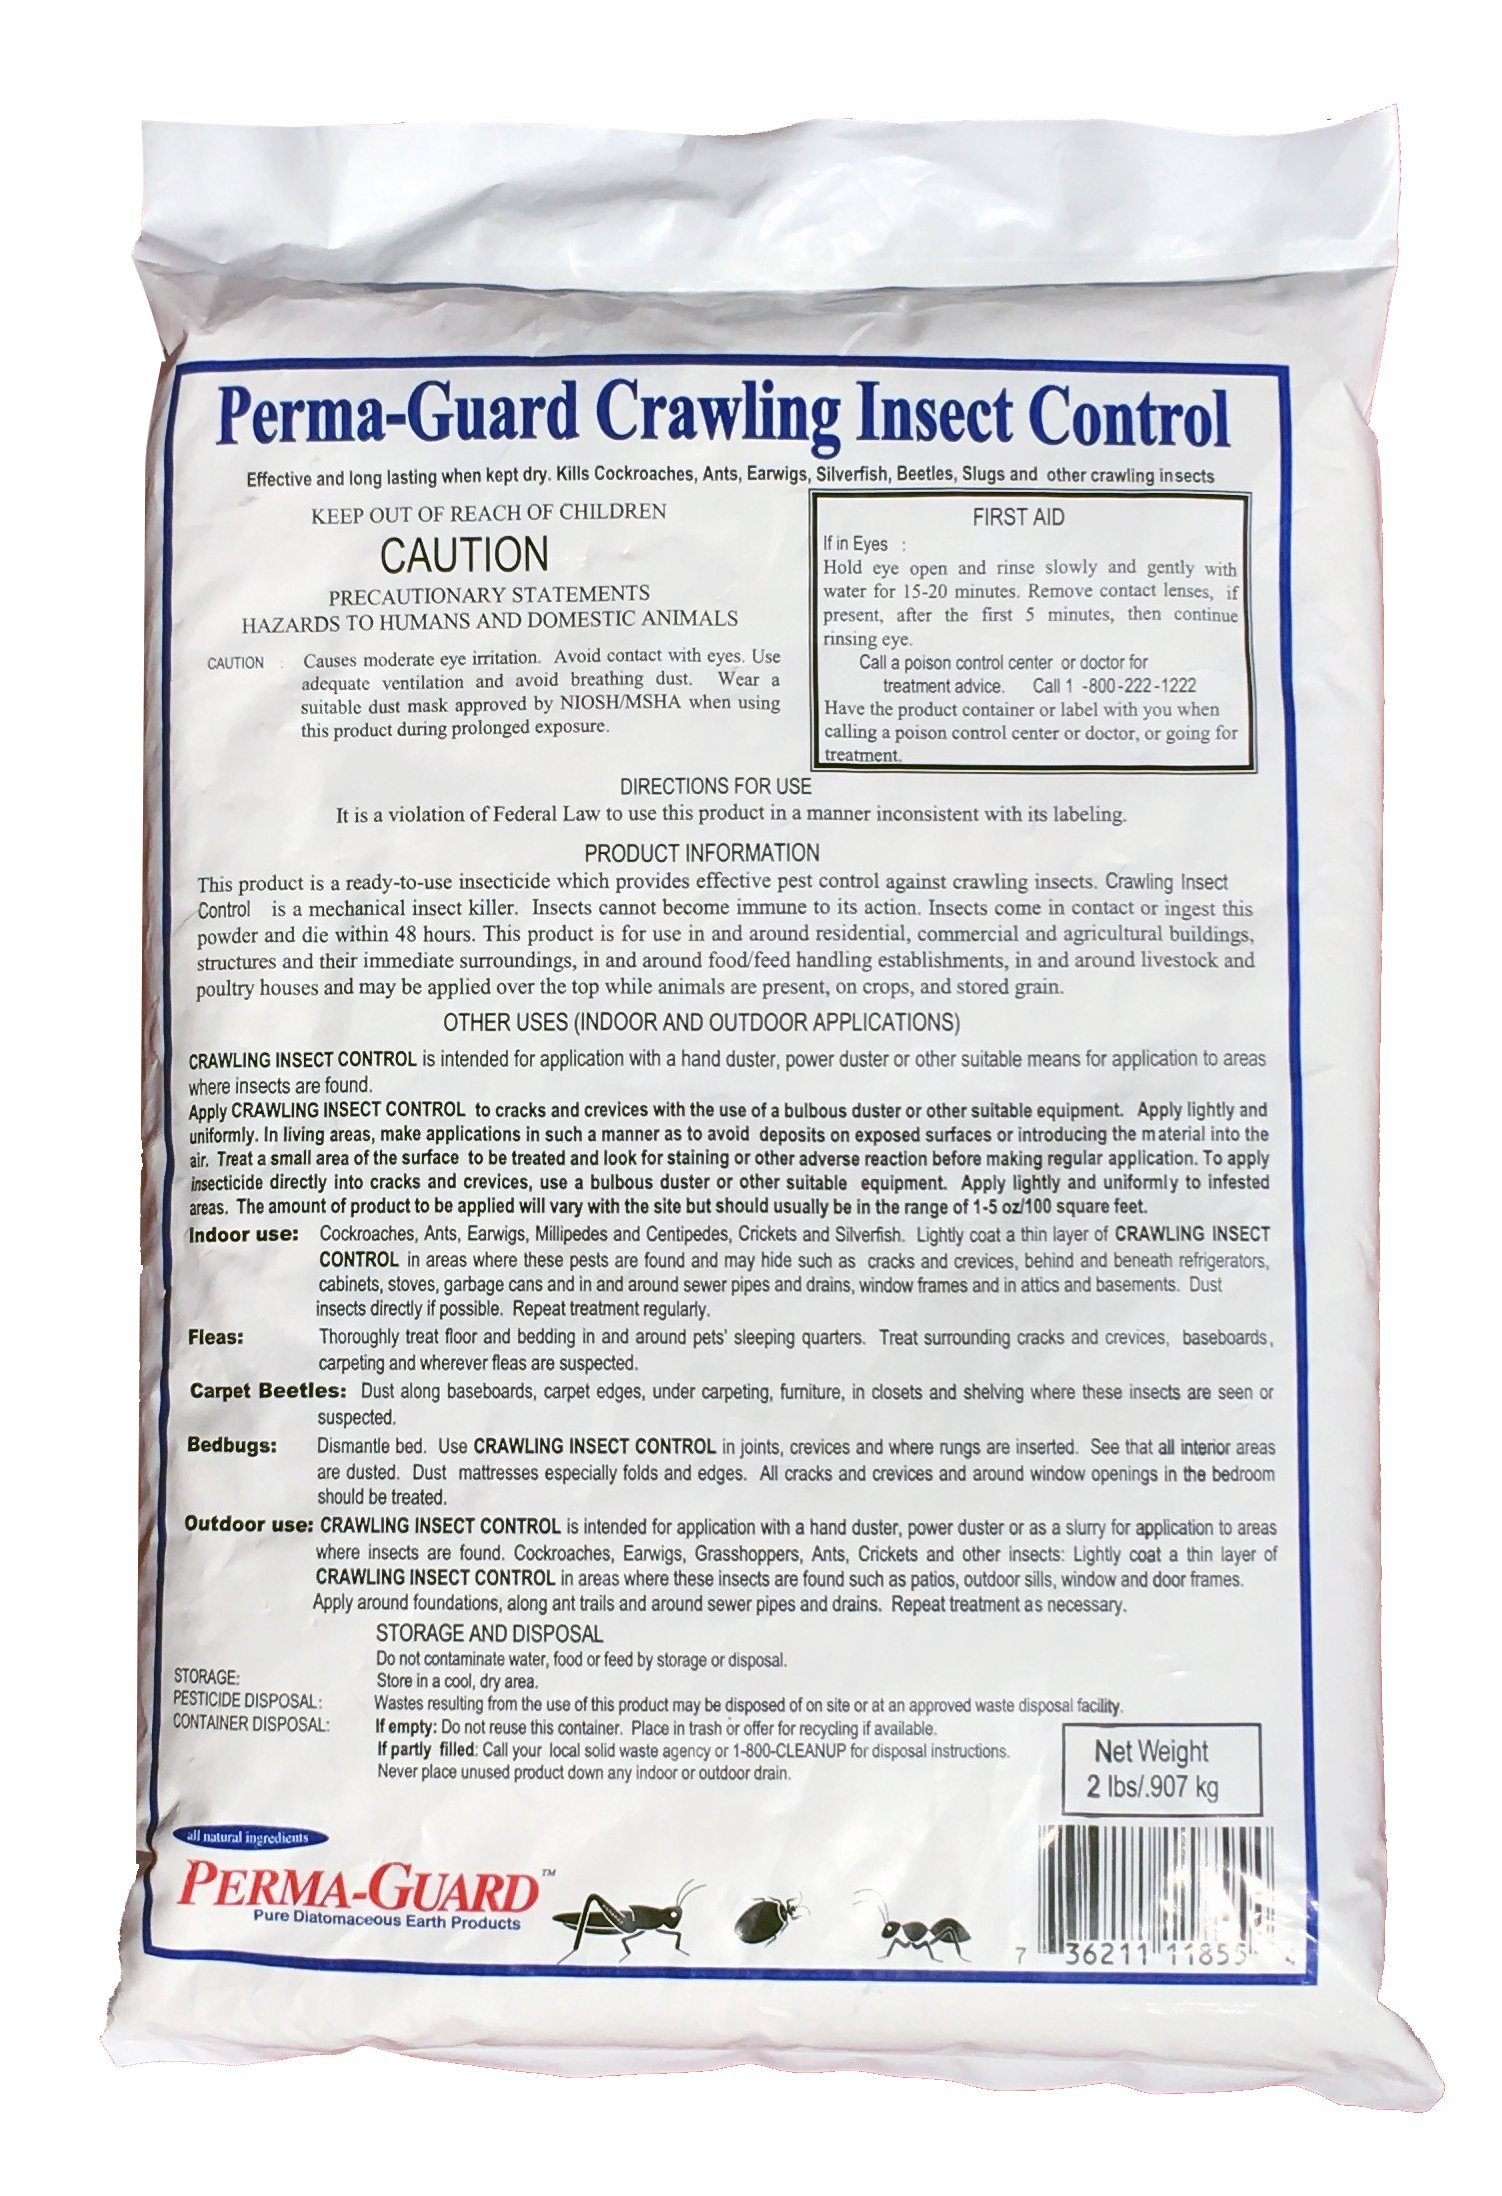 Perma Guard Crawling Insect Control Diatomaceous Earth Powder / 2 Pound Bag by Perma Guard